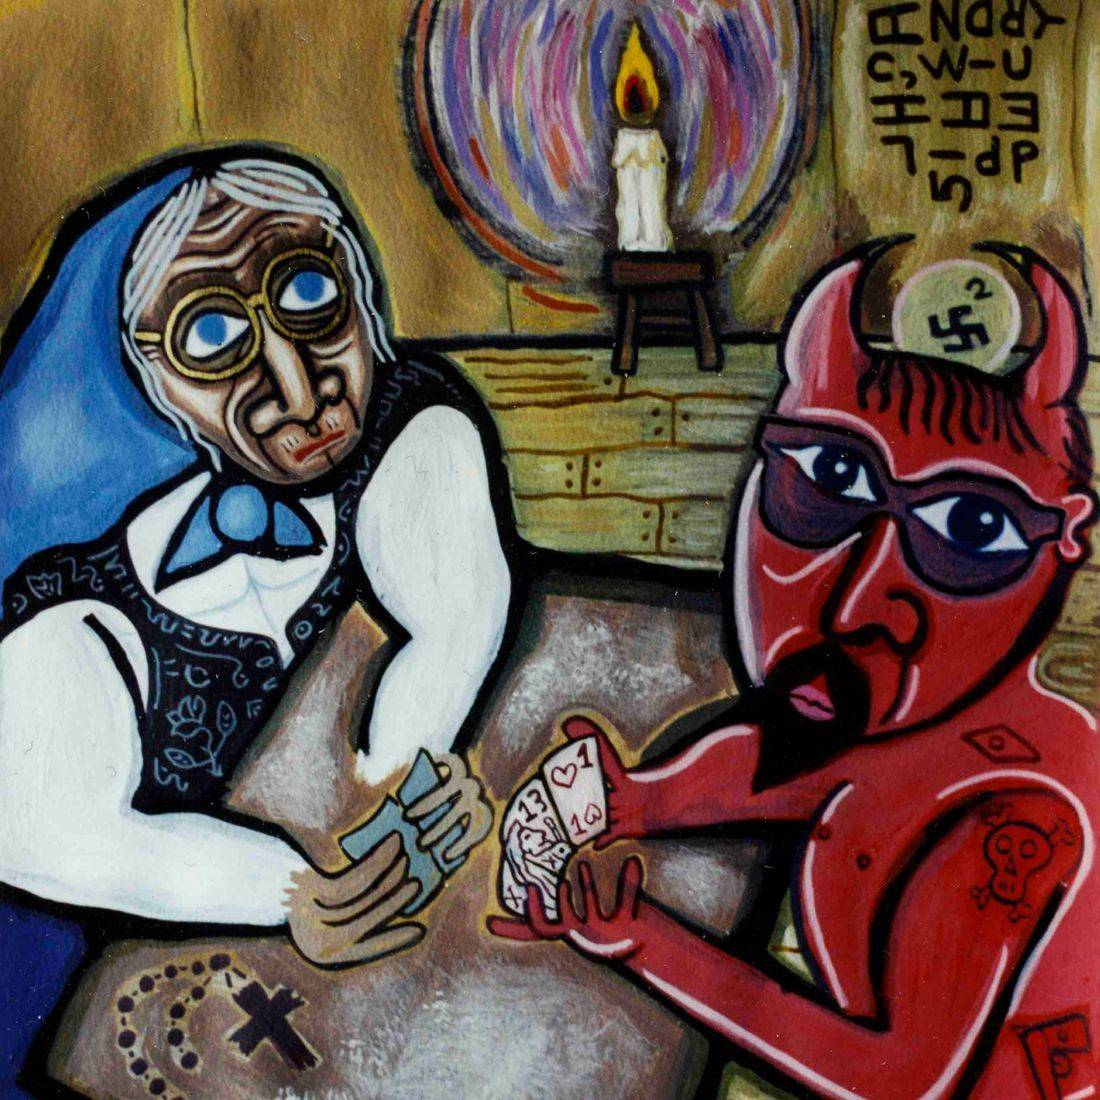 Grandmother, Devil, Playing Cards, Deck of Cards, Gambling, Selling One's Soul, Card Game, Poker